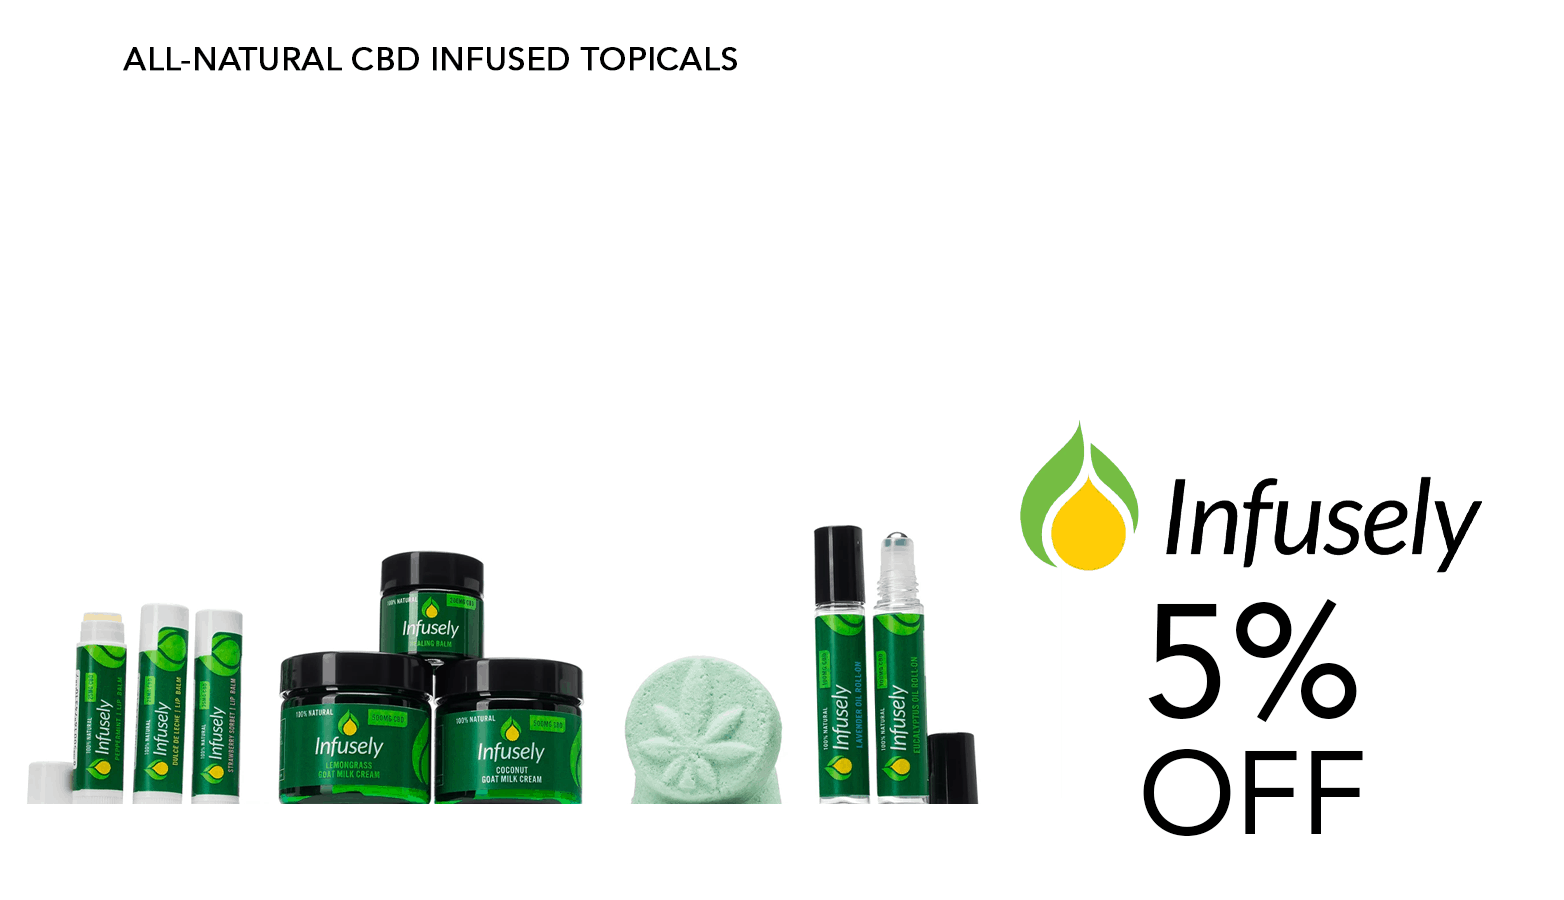 Infusely CBD Coupon Code Offer Website